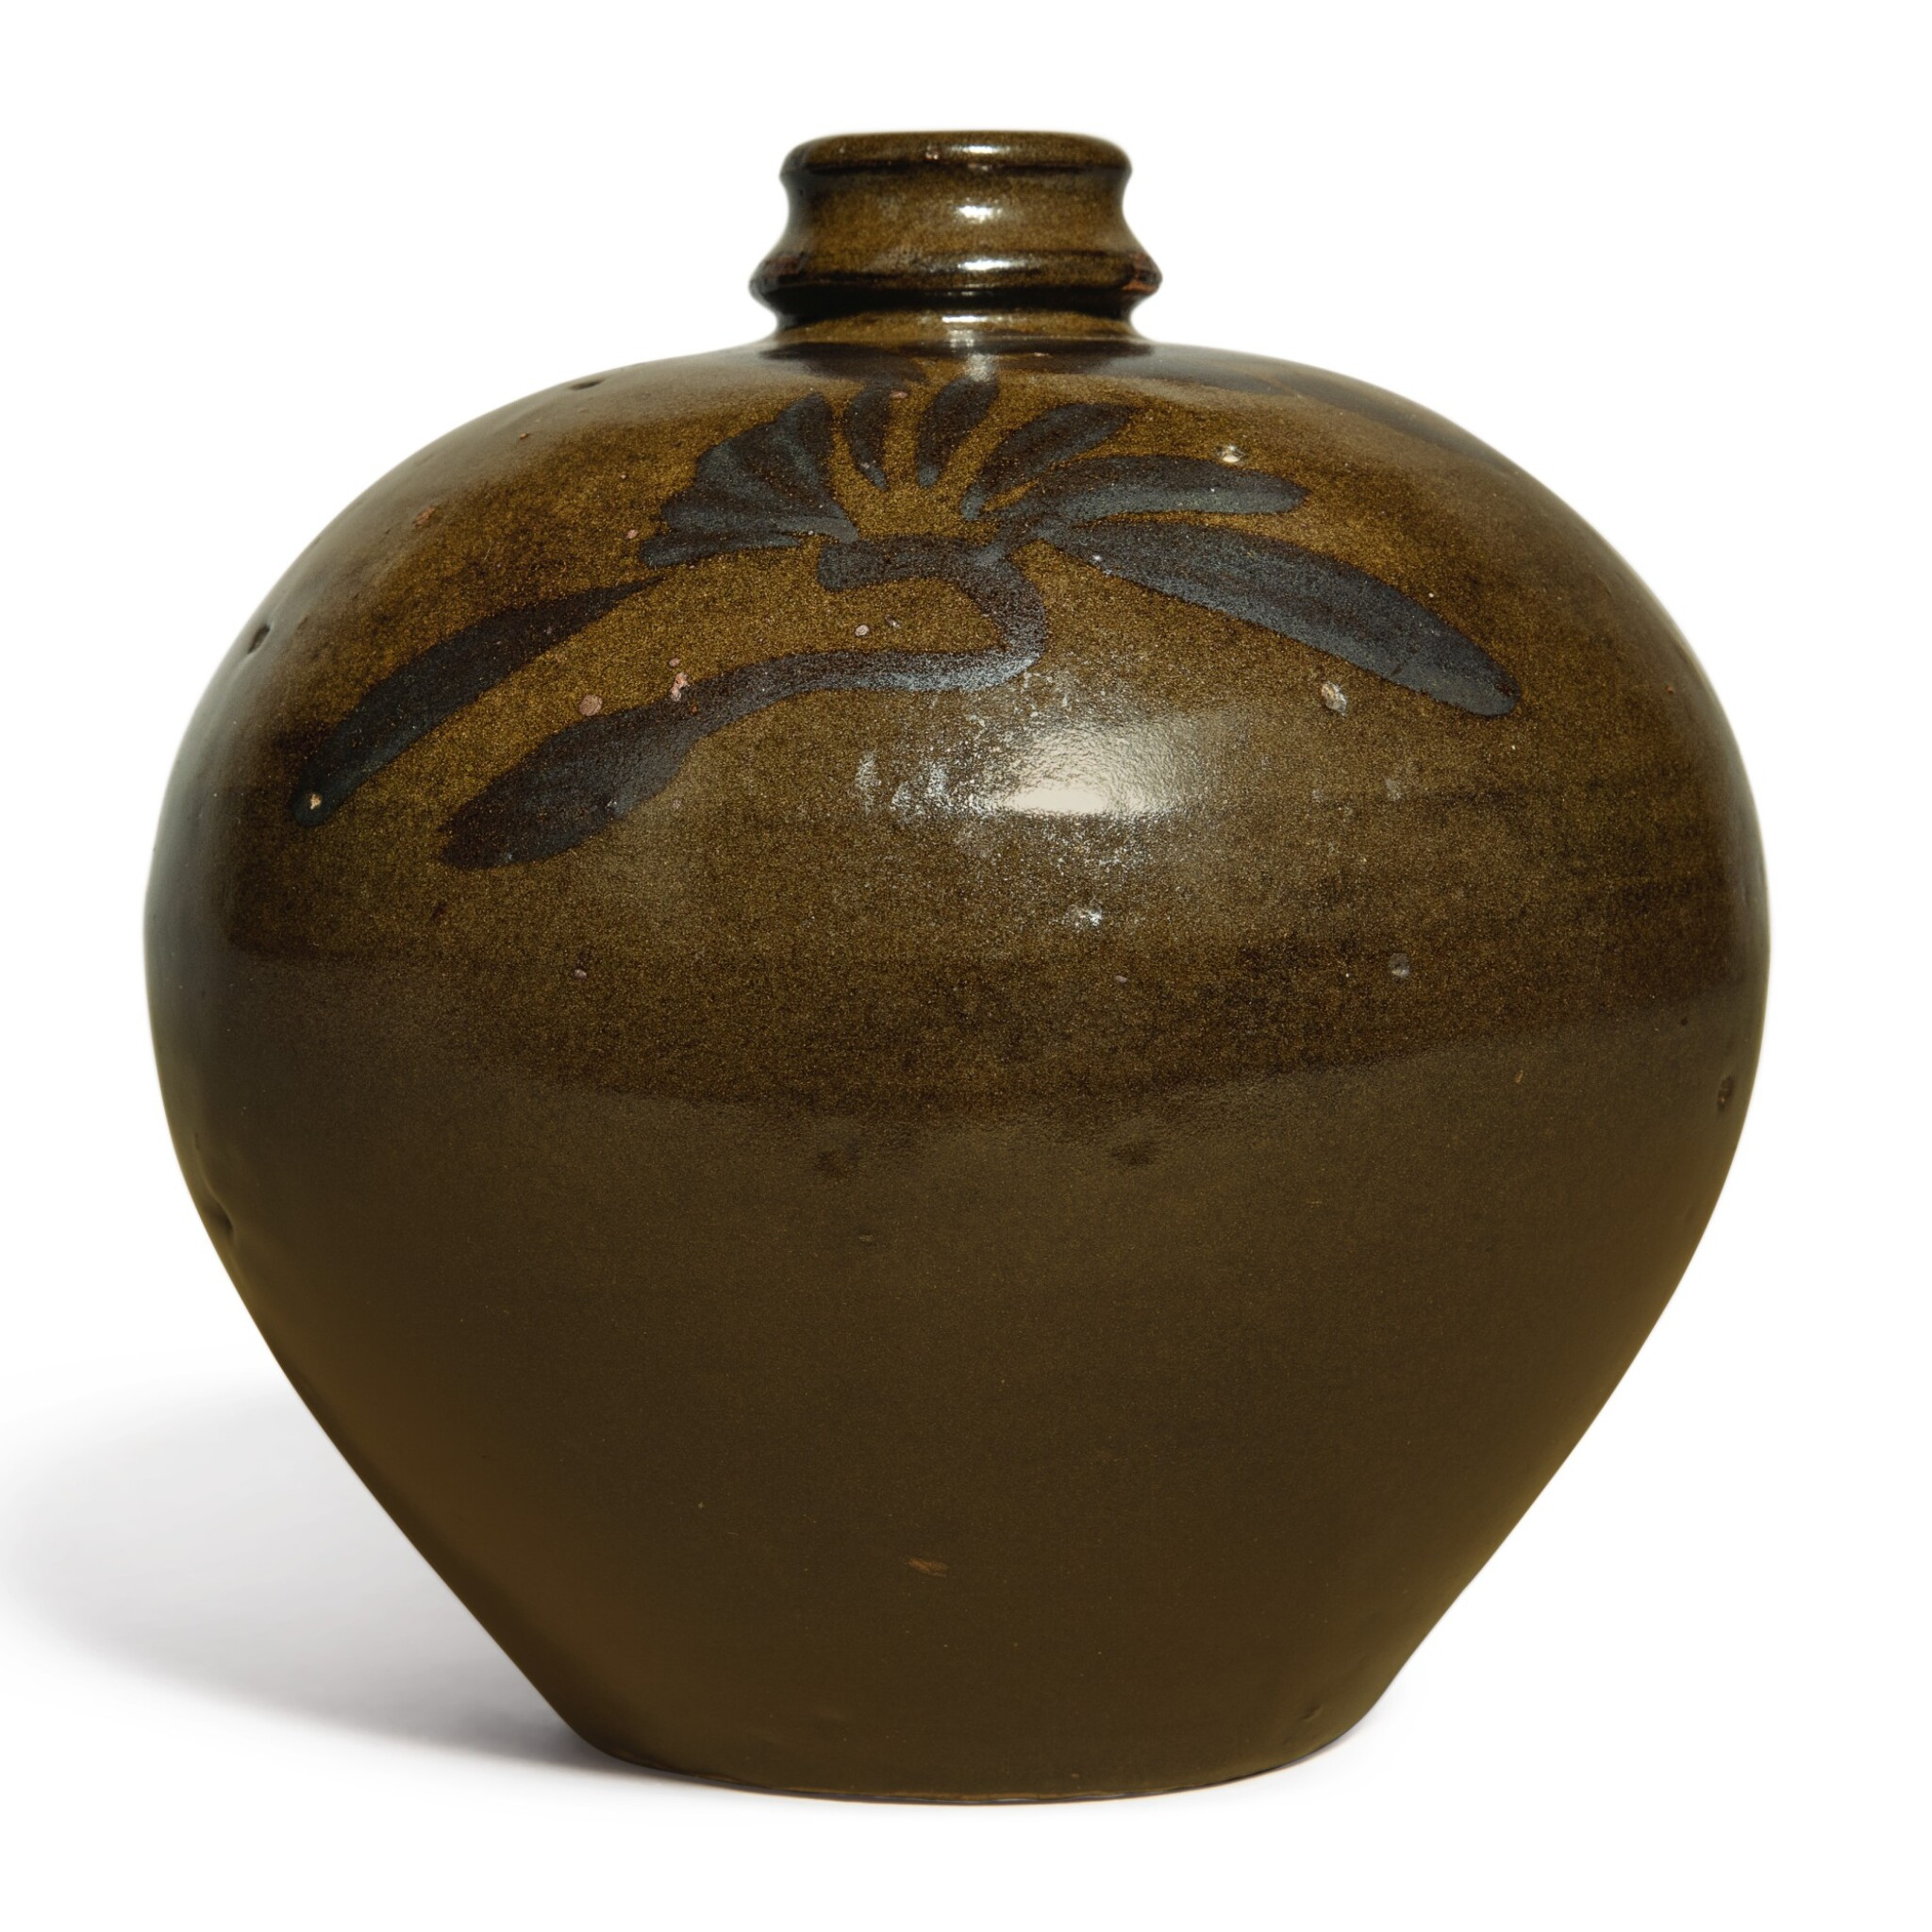 View full screen - View 1 of Lot 108. An iron-brown-decorated teadust-glazed vase, Jin dynasty | 金 茶葉末釉鐵鏽花紋小口瓶.